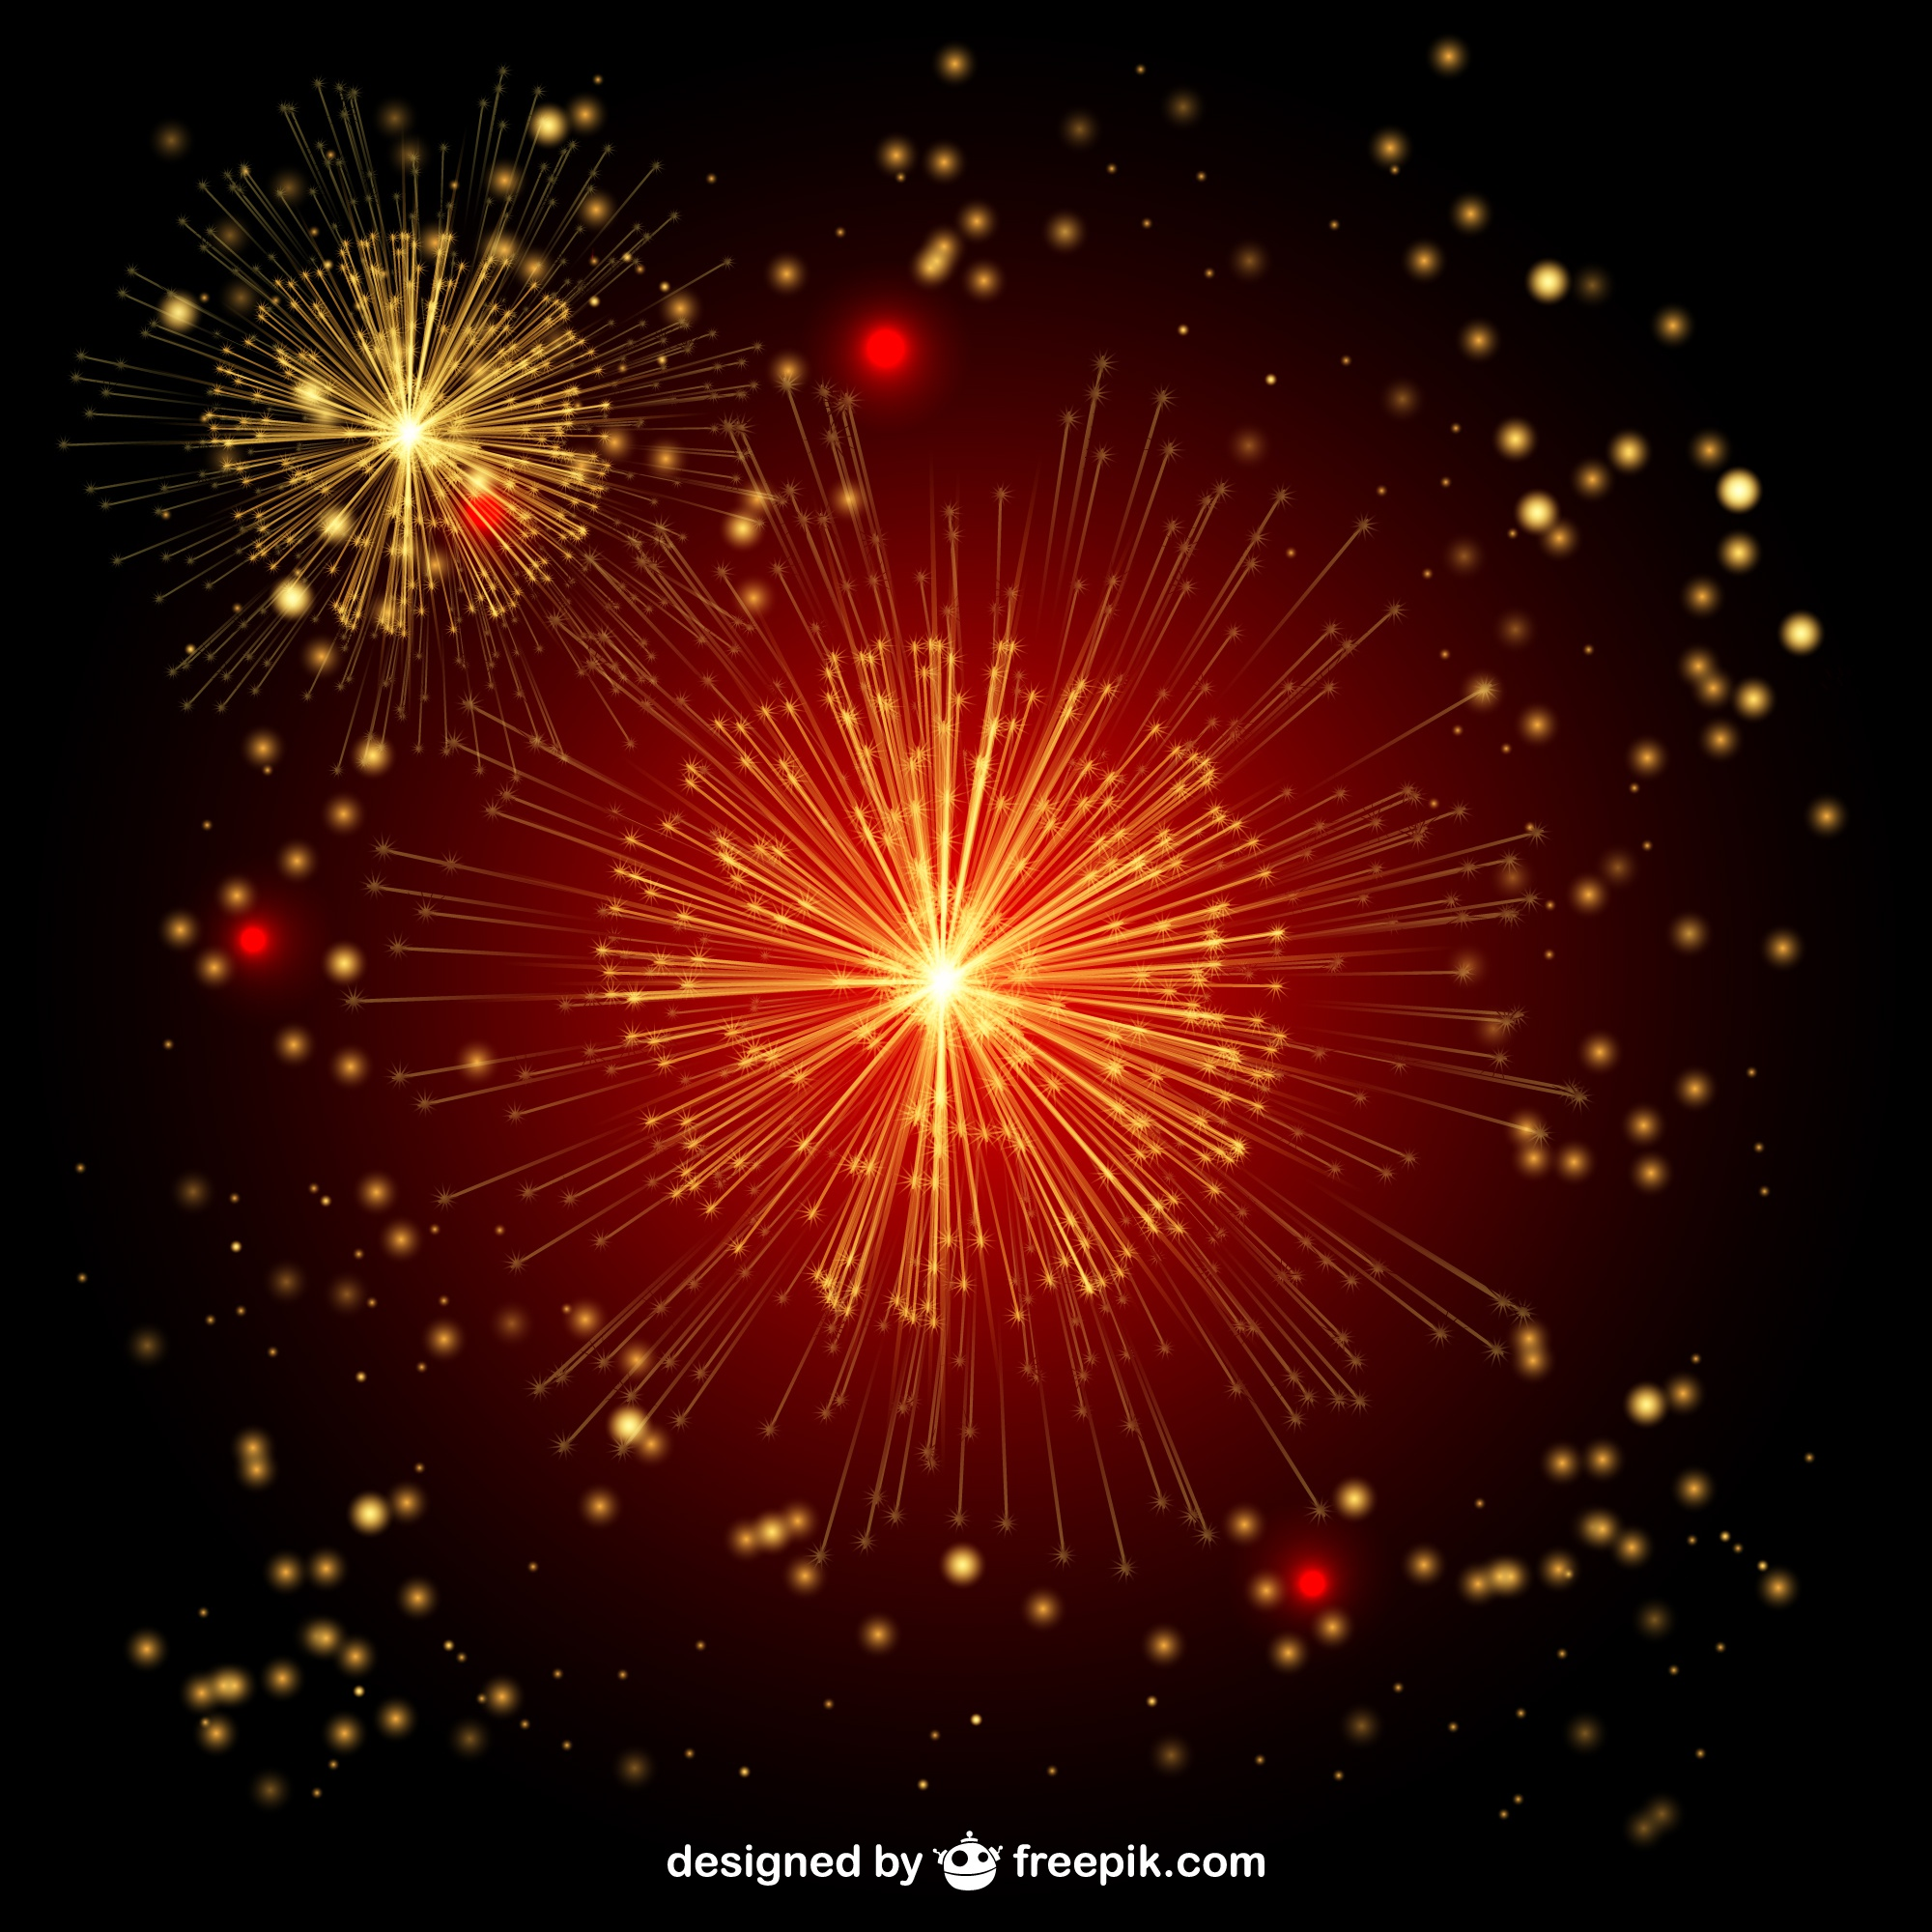 Fireworks vector free illustration